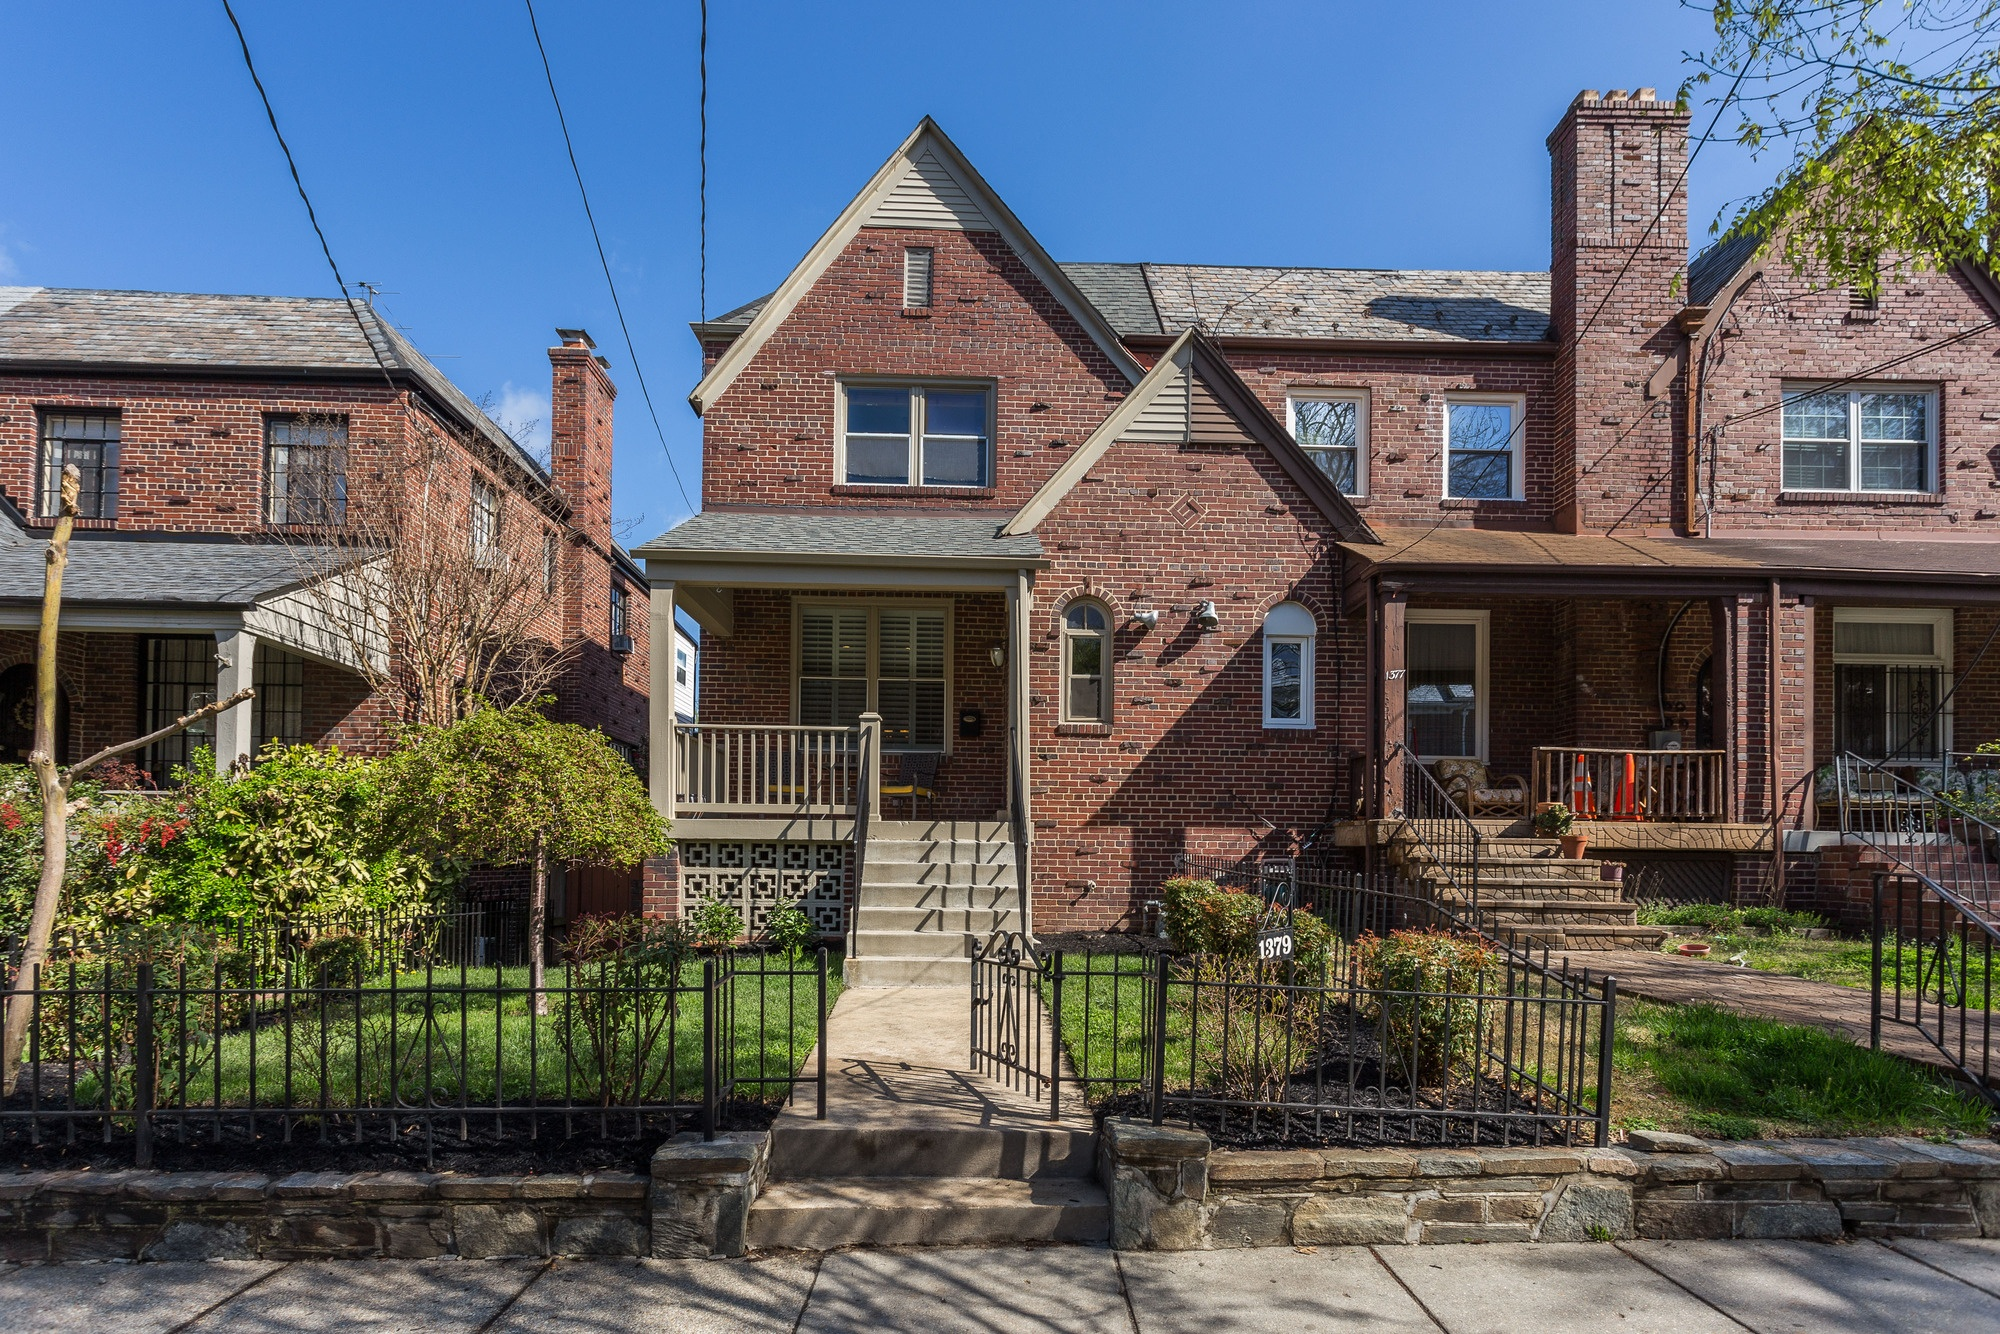 SOLD: Old English Row Home in Brightwood